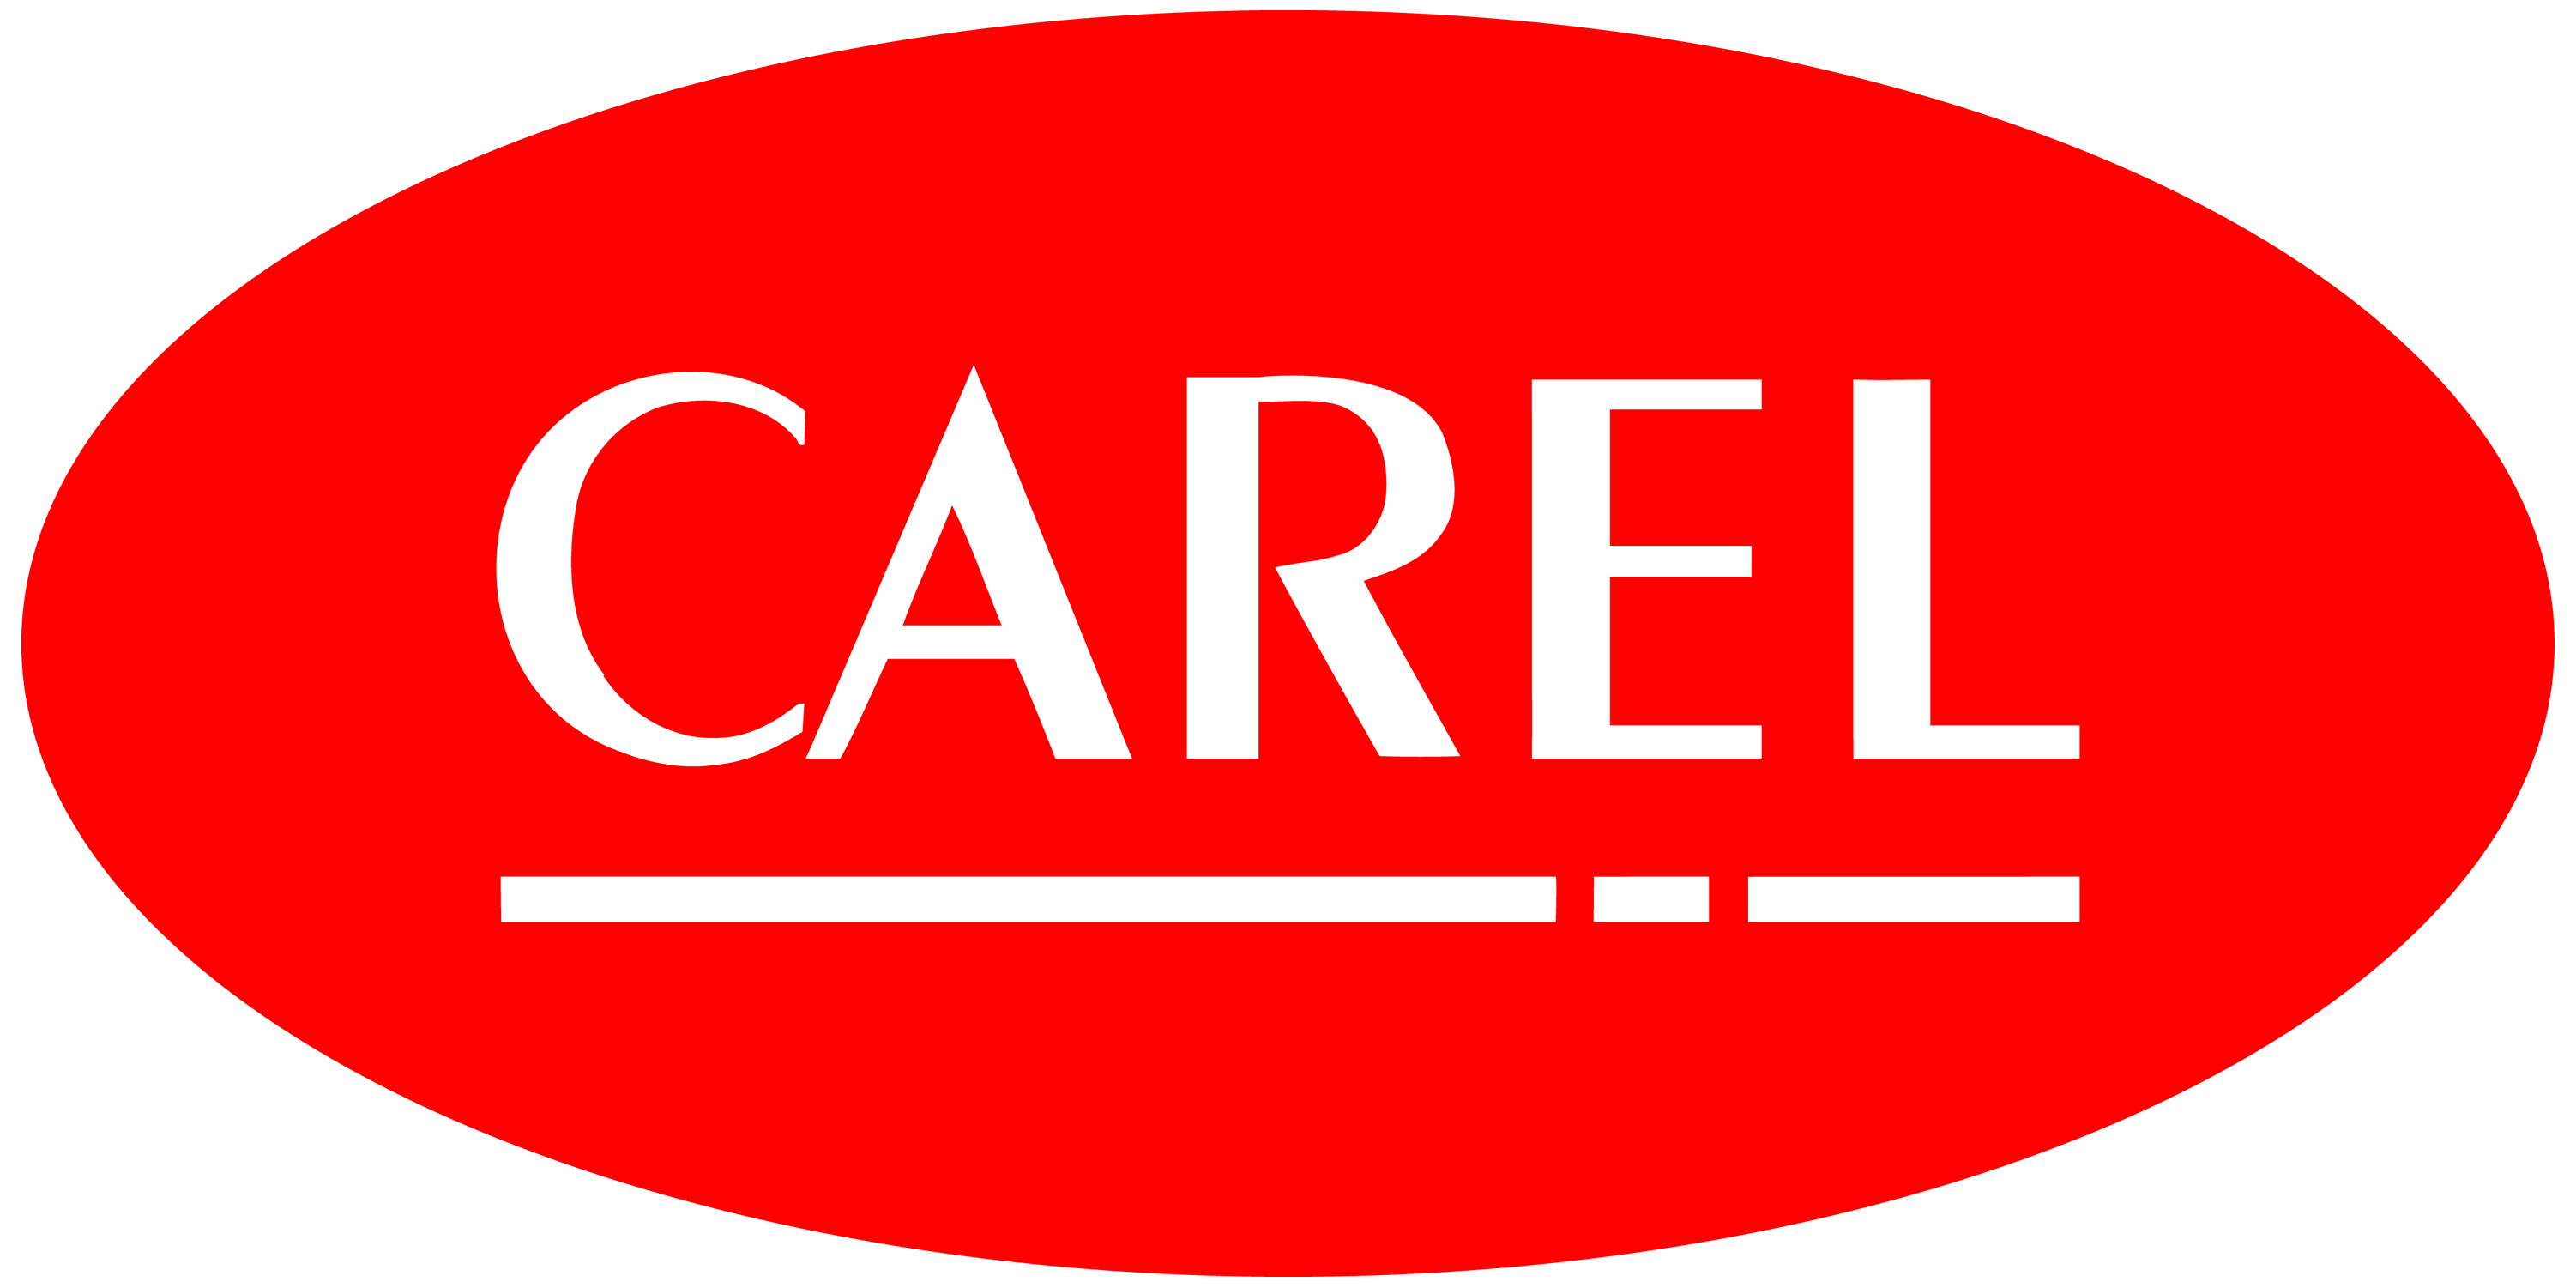 CAREL - Newsroom